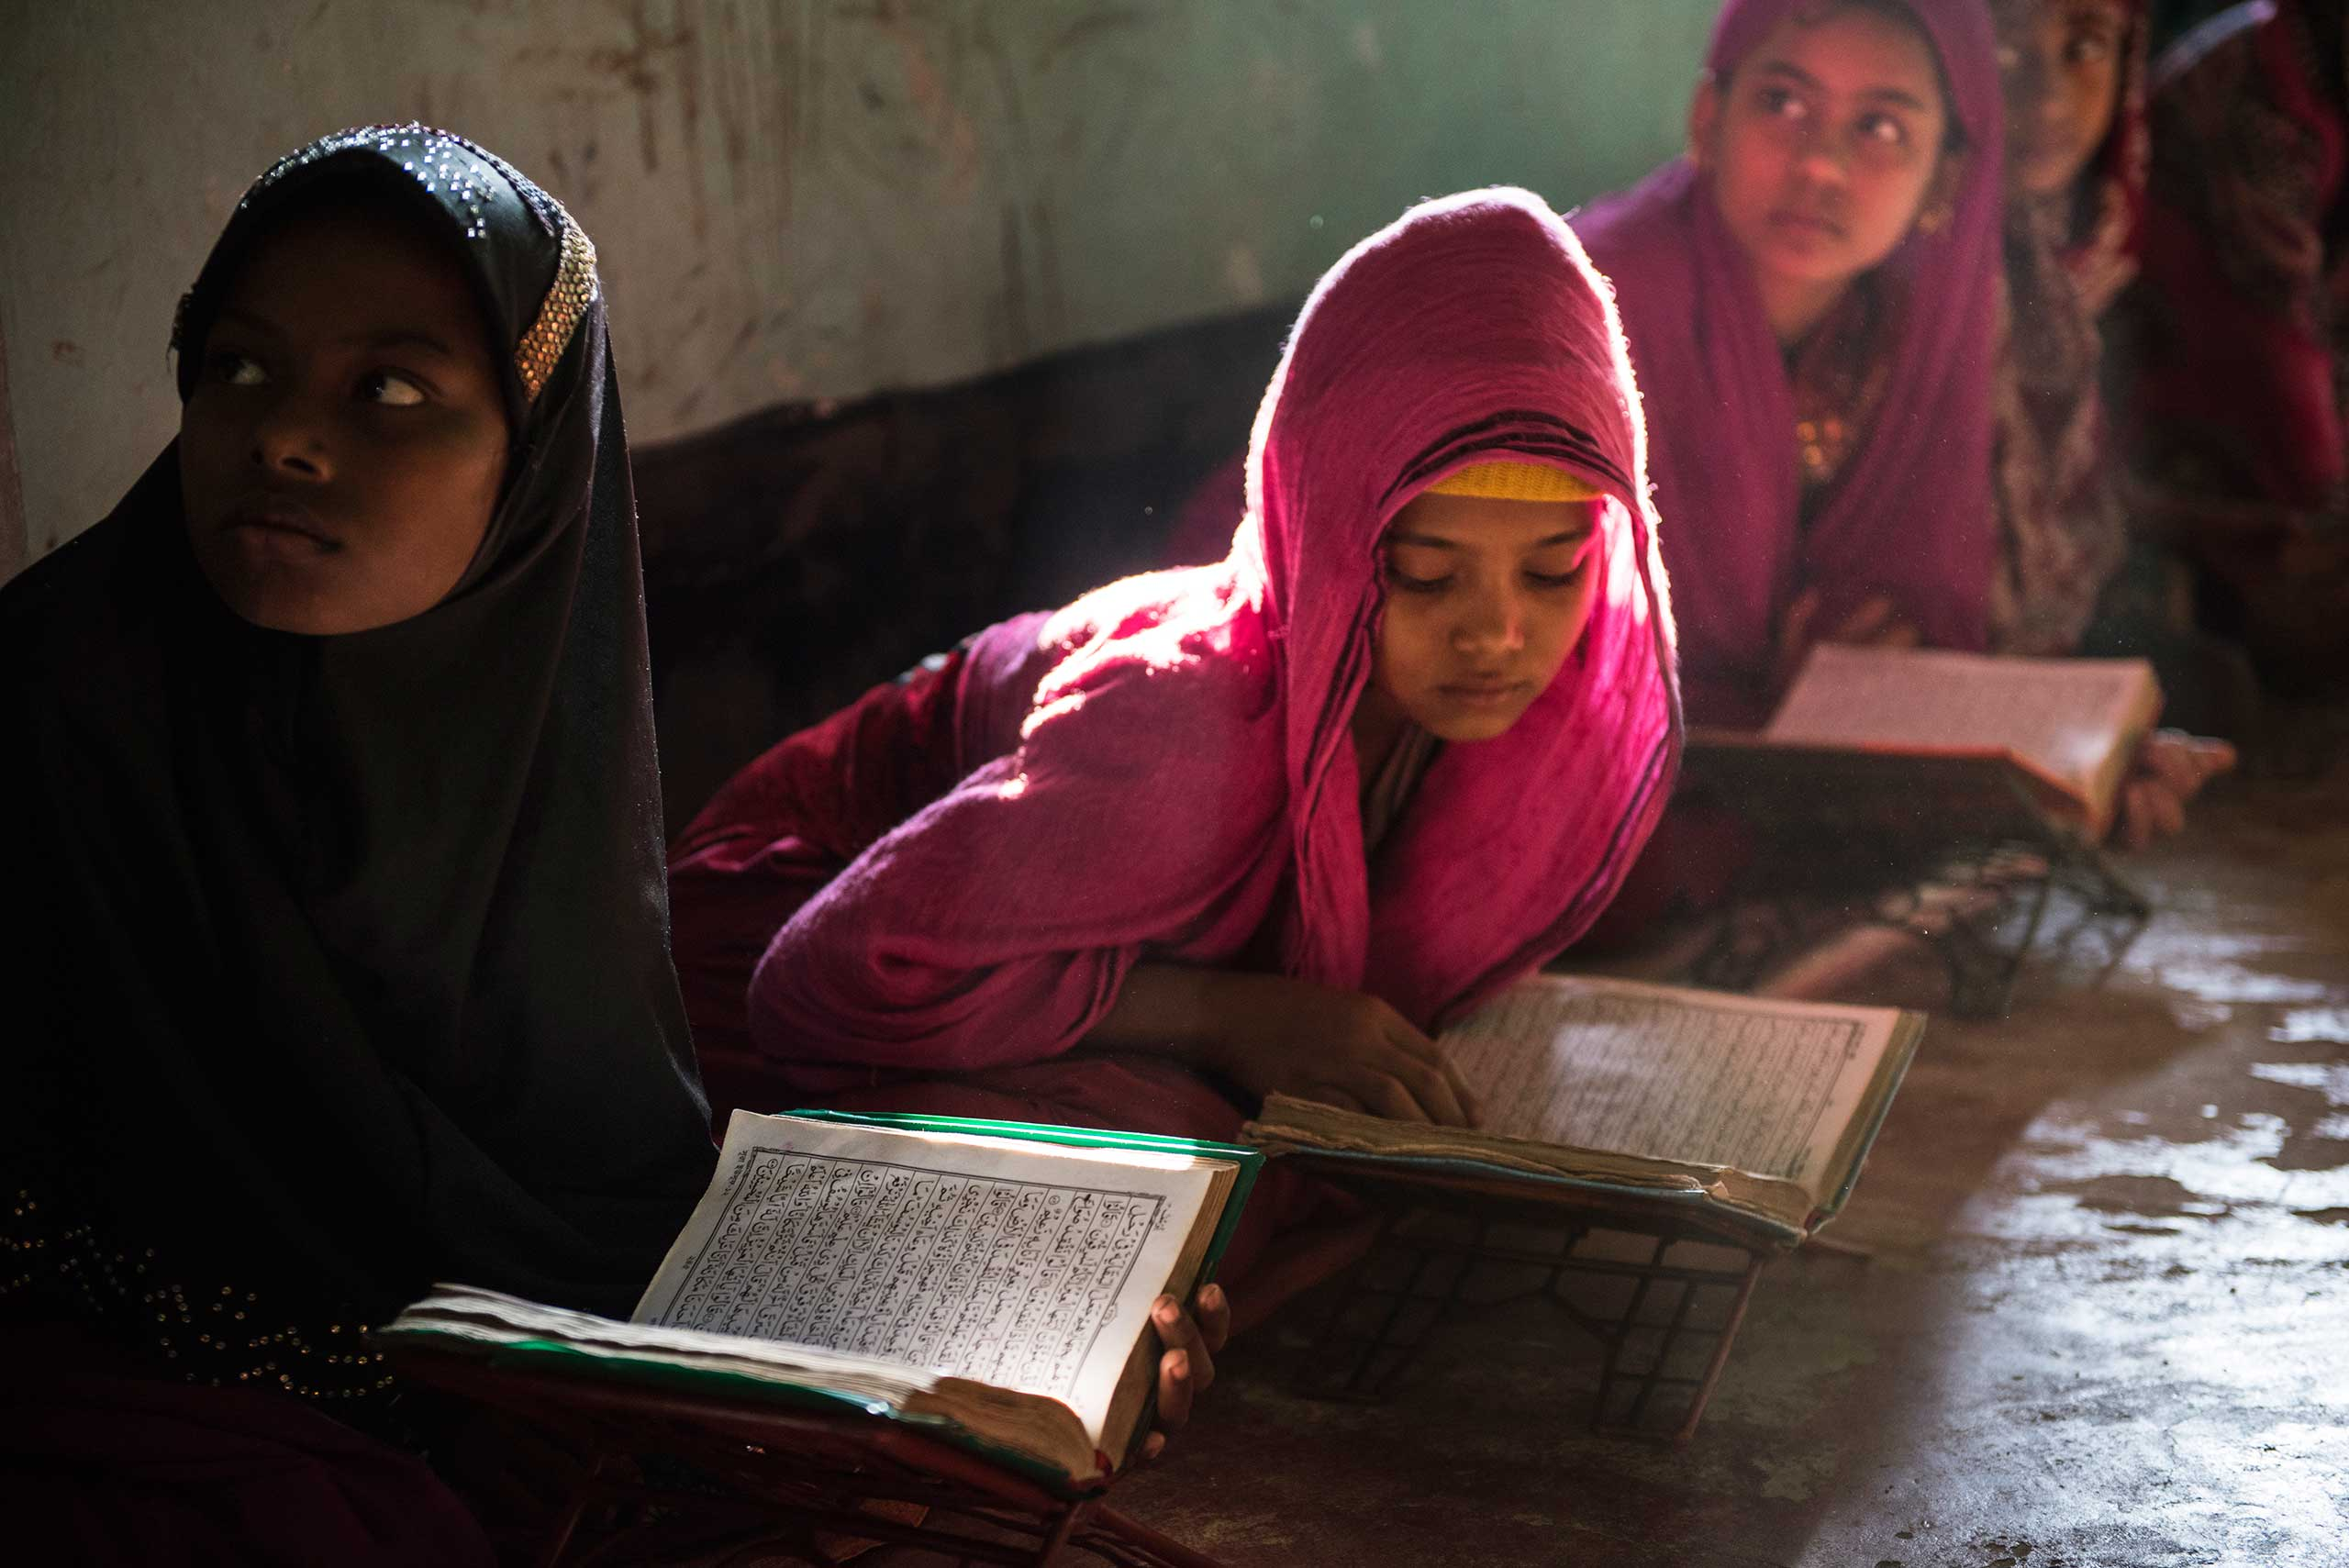 Sitara, 8, left, and Shahana, 10, right, read the Koran at a madrassa in a mosque in Shamlapur, a Rohingya settlement, outside of Cox's bazaar. While there are very few opportunities for Rohingya children to go to school, most children do study the Koran at the local madrassa with the Imam of the community, in  Bangladesh, Jan. 16, 2016.